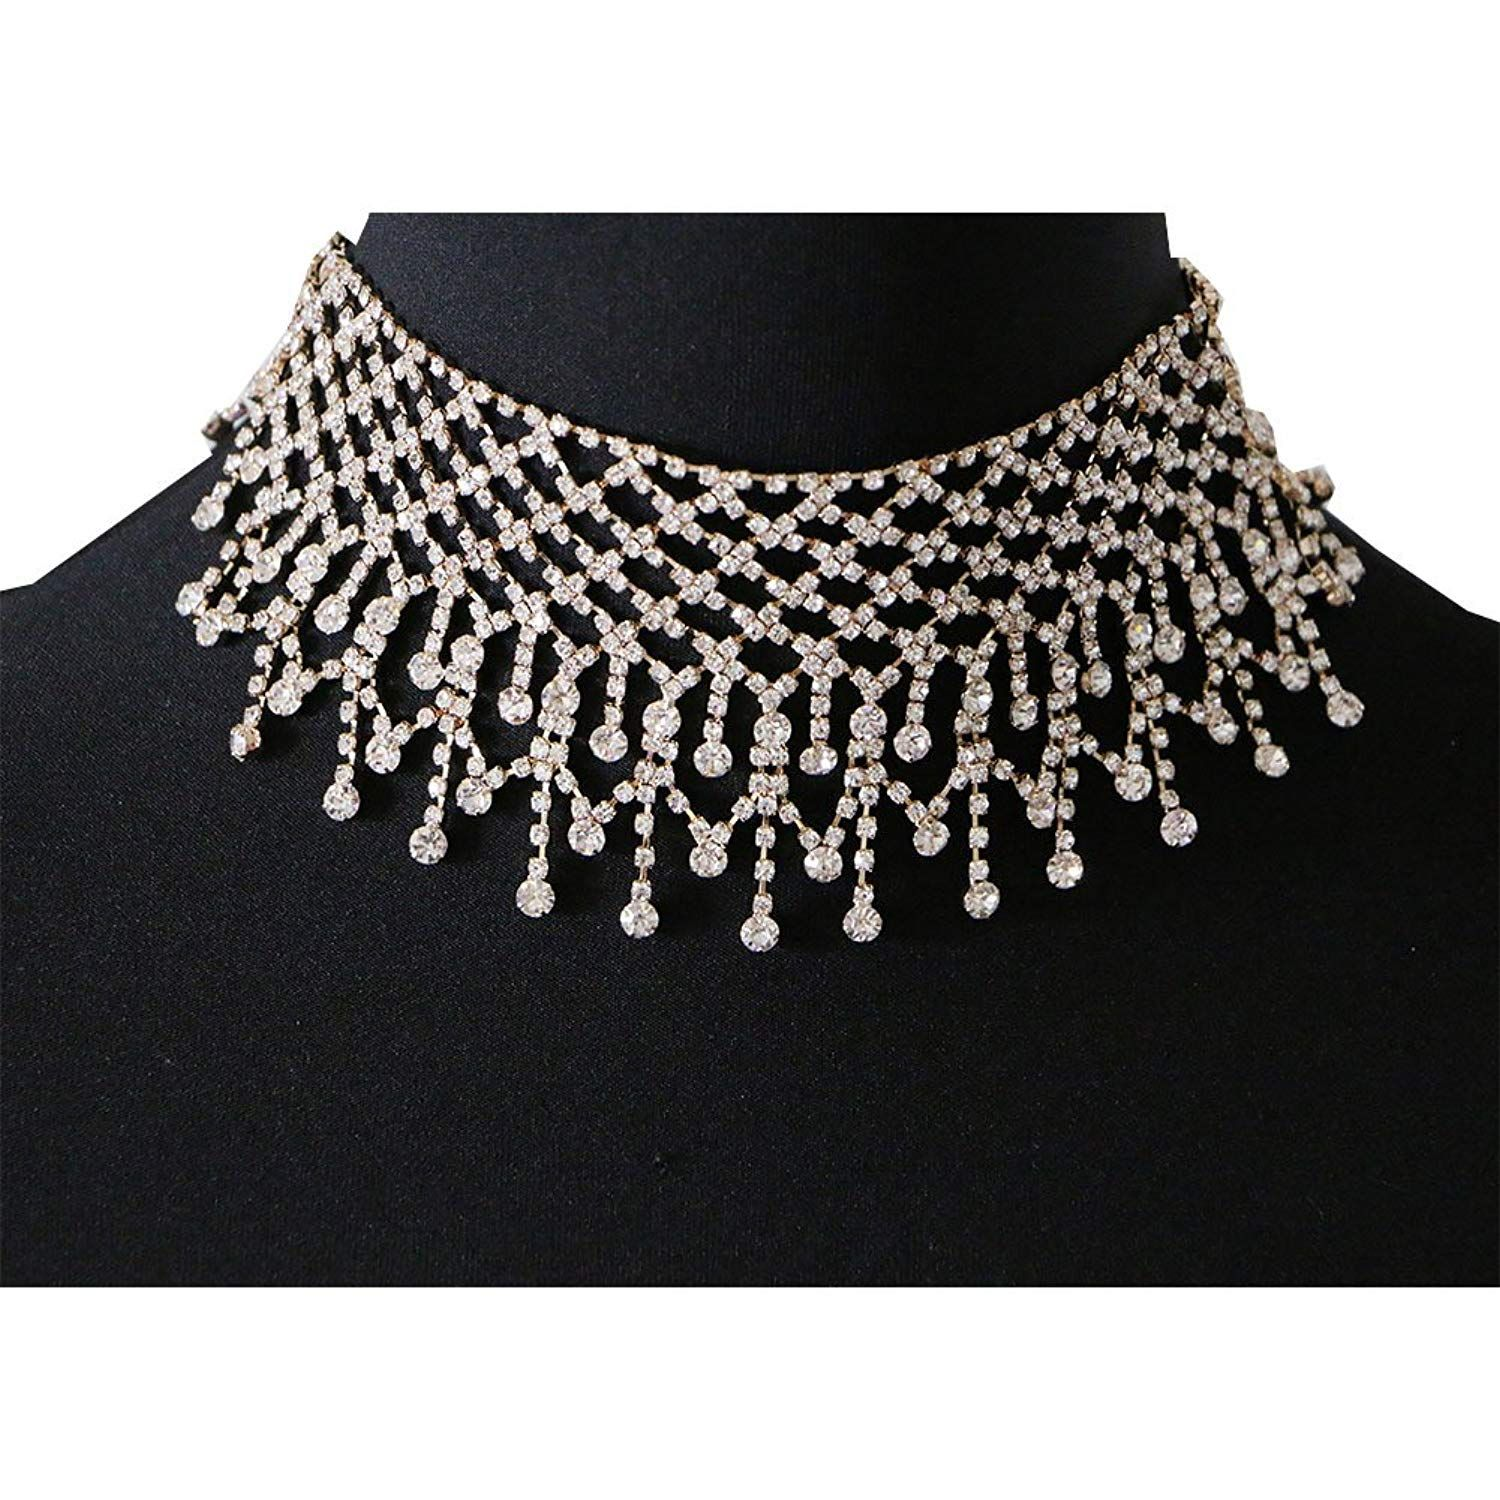 Elegant-Store-A Men and Women Wedding Jewelry Necklace Black Leather Chains Steel Silver Casting Rhinestone Choker Necklace